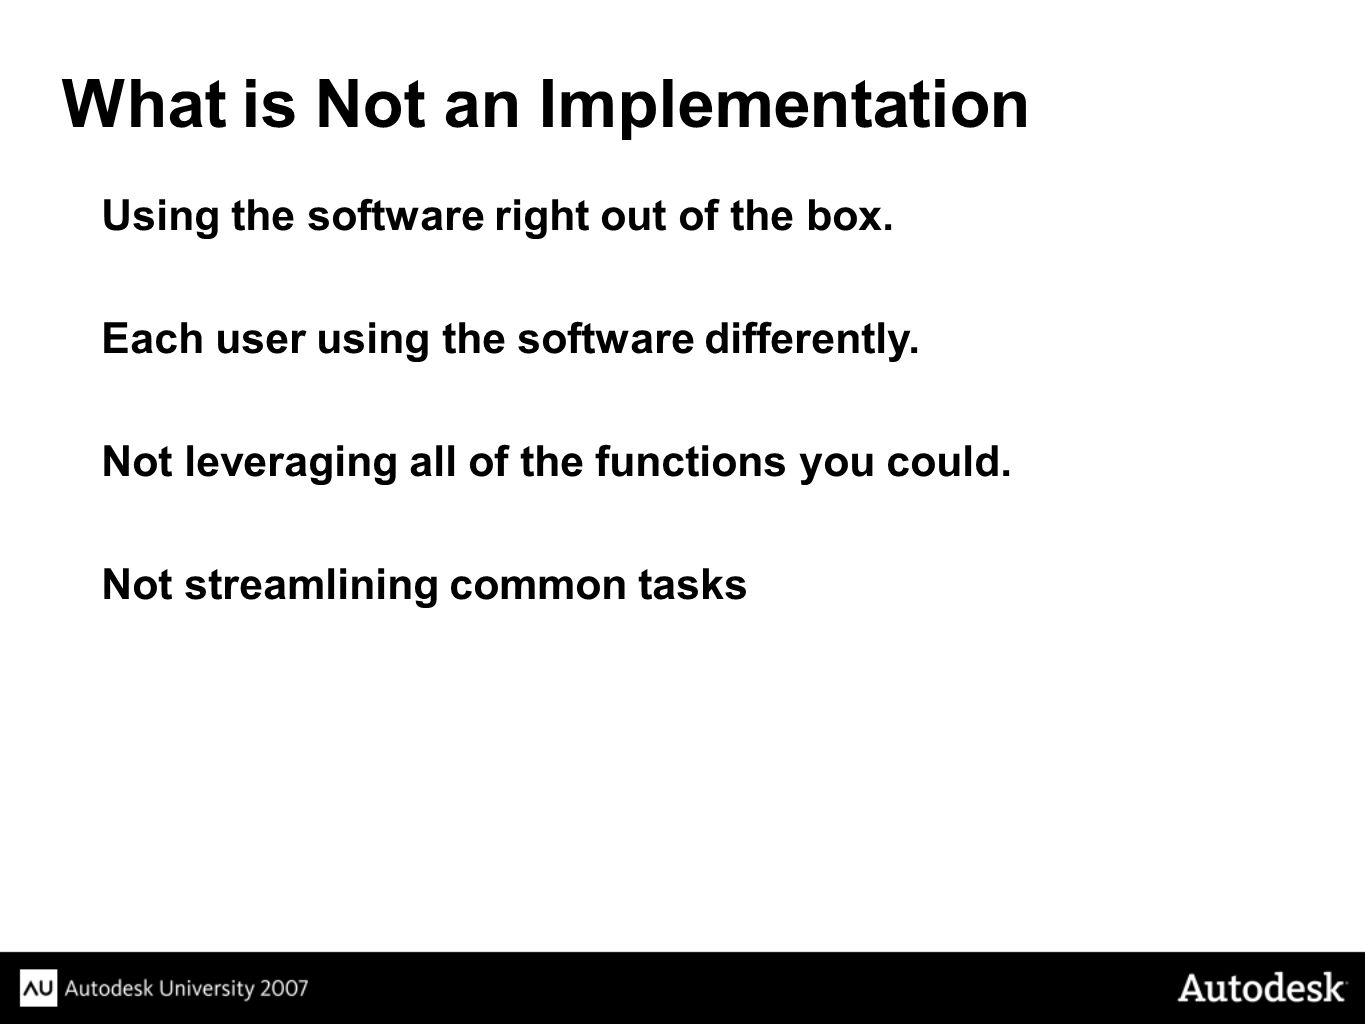 Using the software right out of the box.Each user using the software differently.